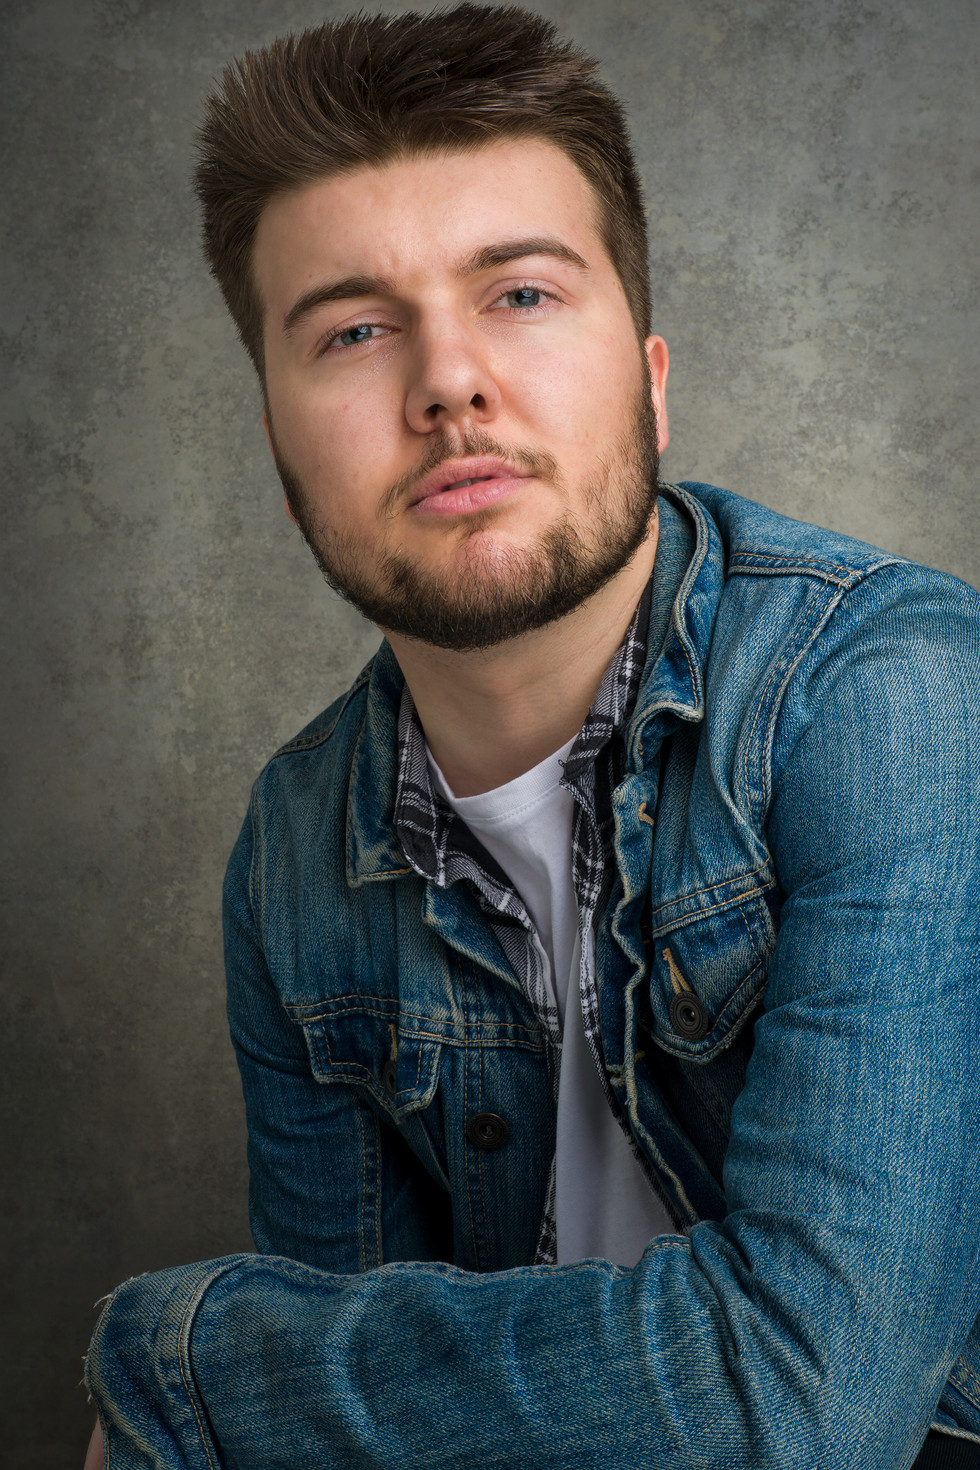 TOBY HOLLOWAY - ACTOR